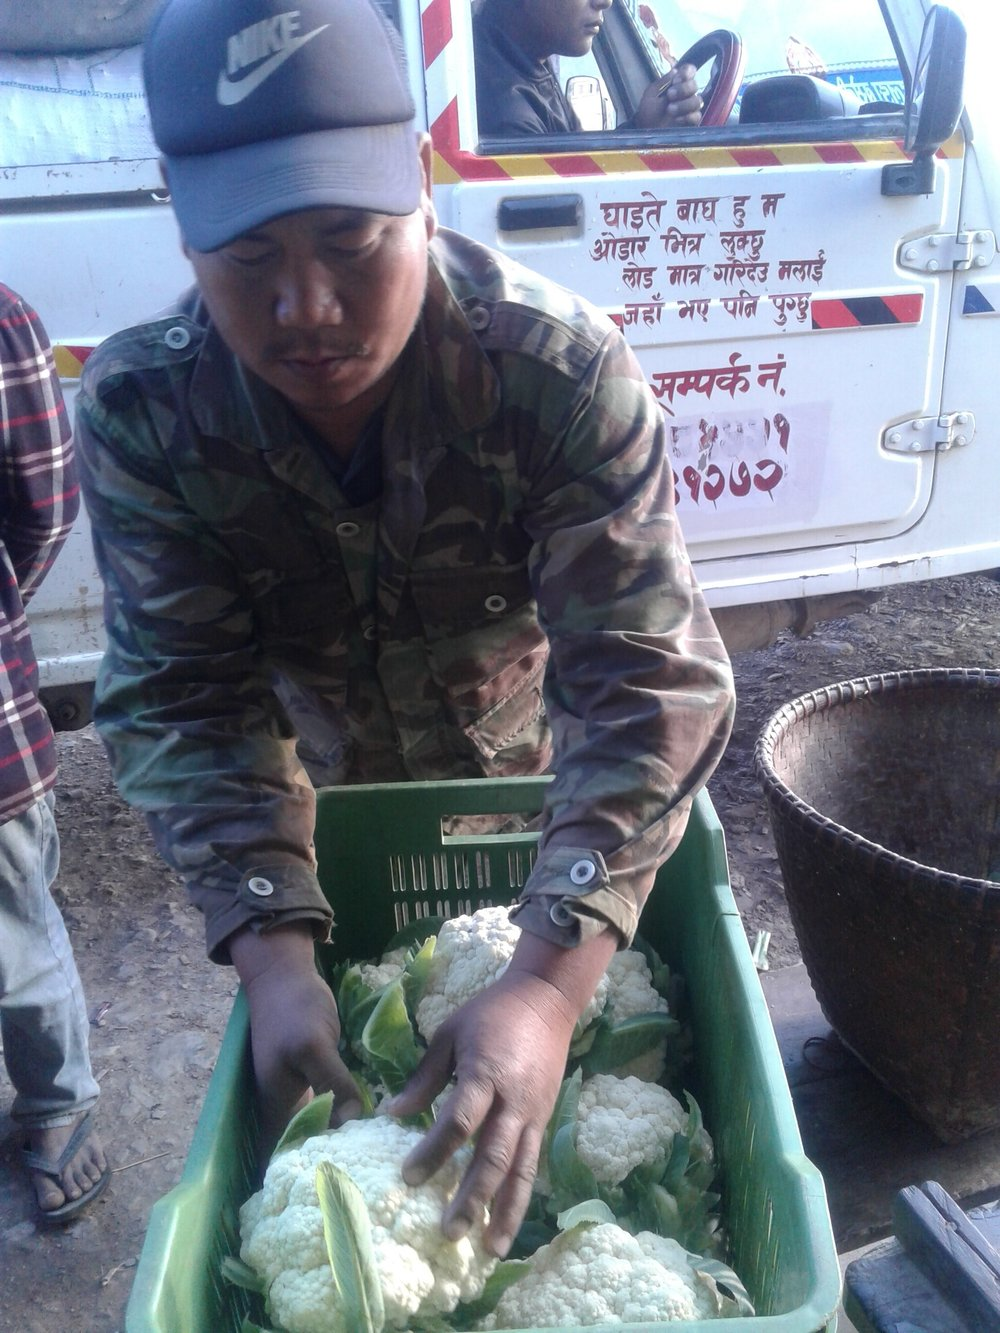 Last minute adjustments to crate of Cauliflower before they are loaded in jeeps and transported to market.